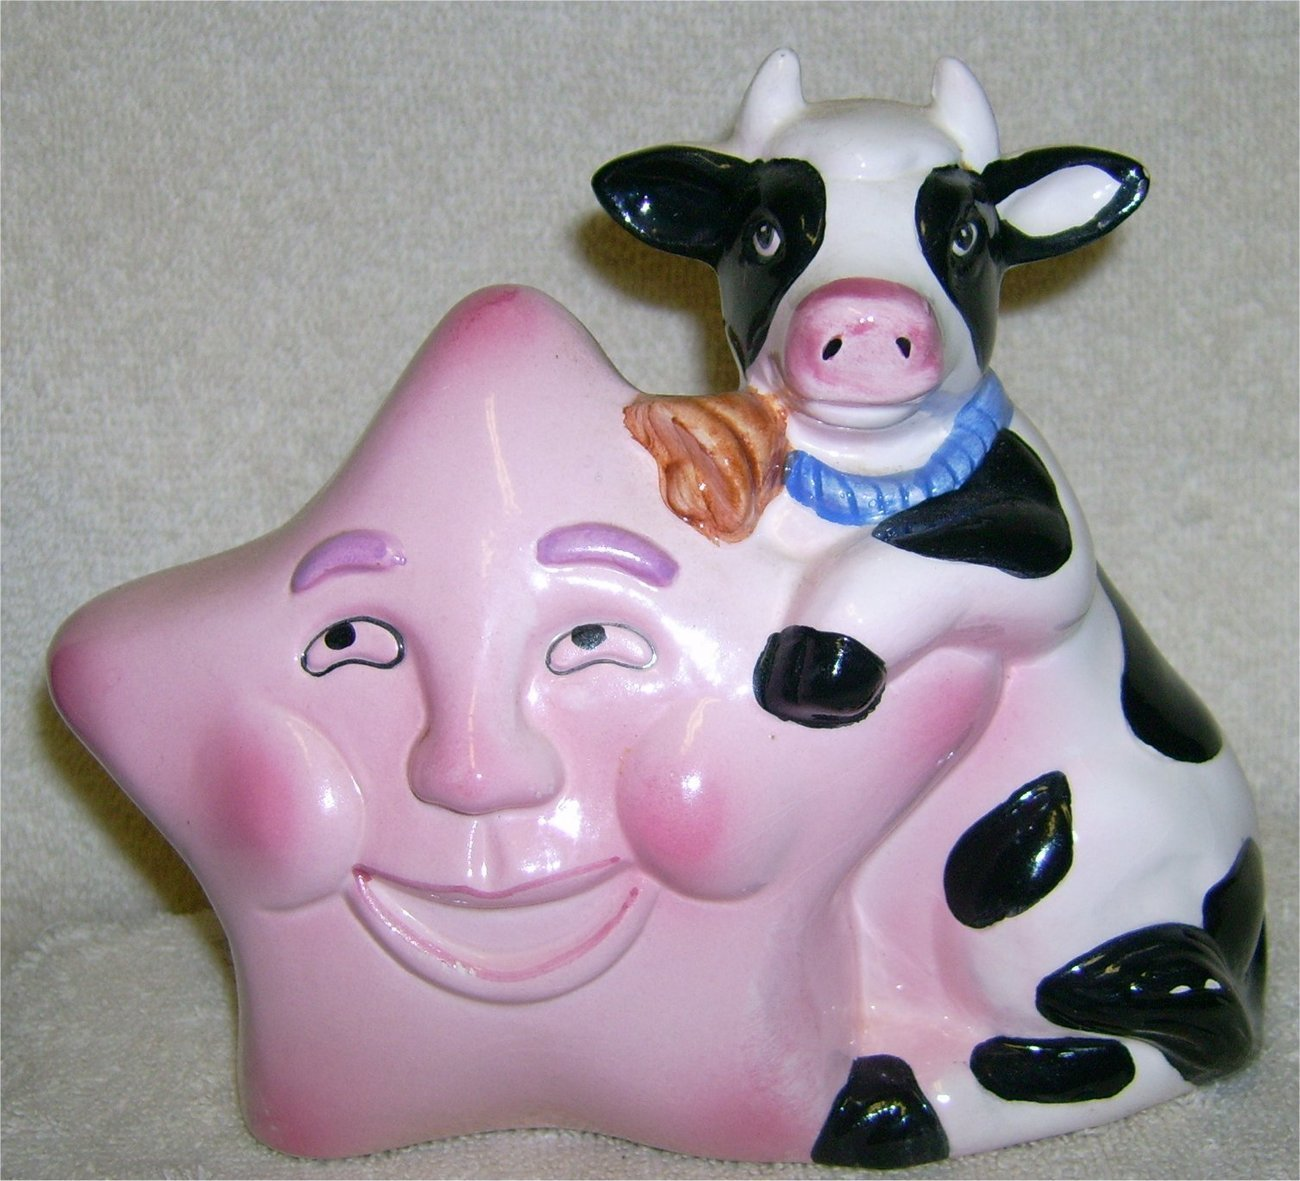 Adorable Cow and Star Ceramic Bank